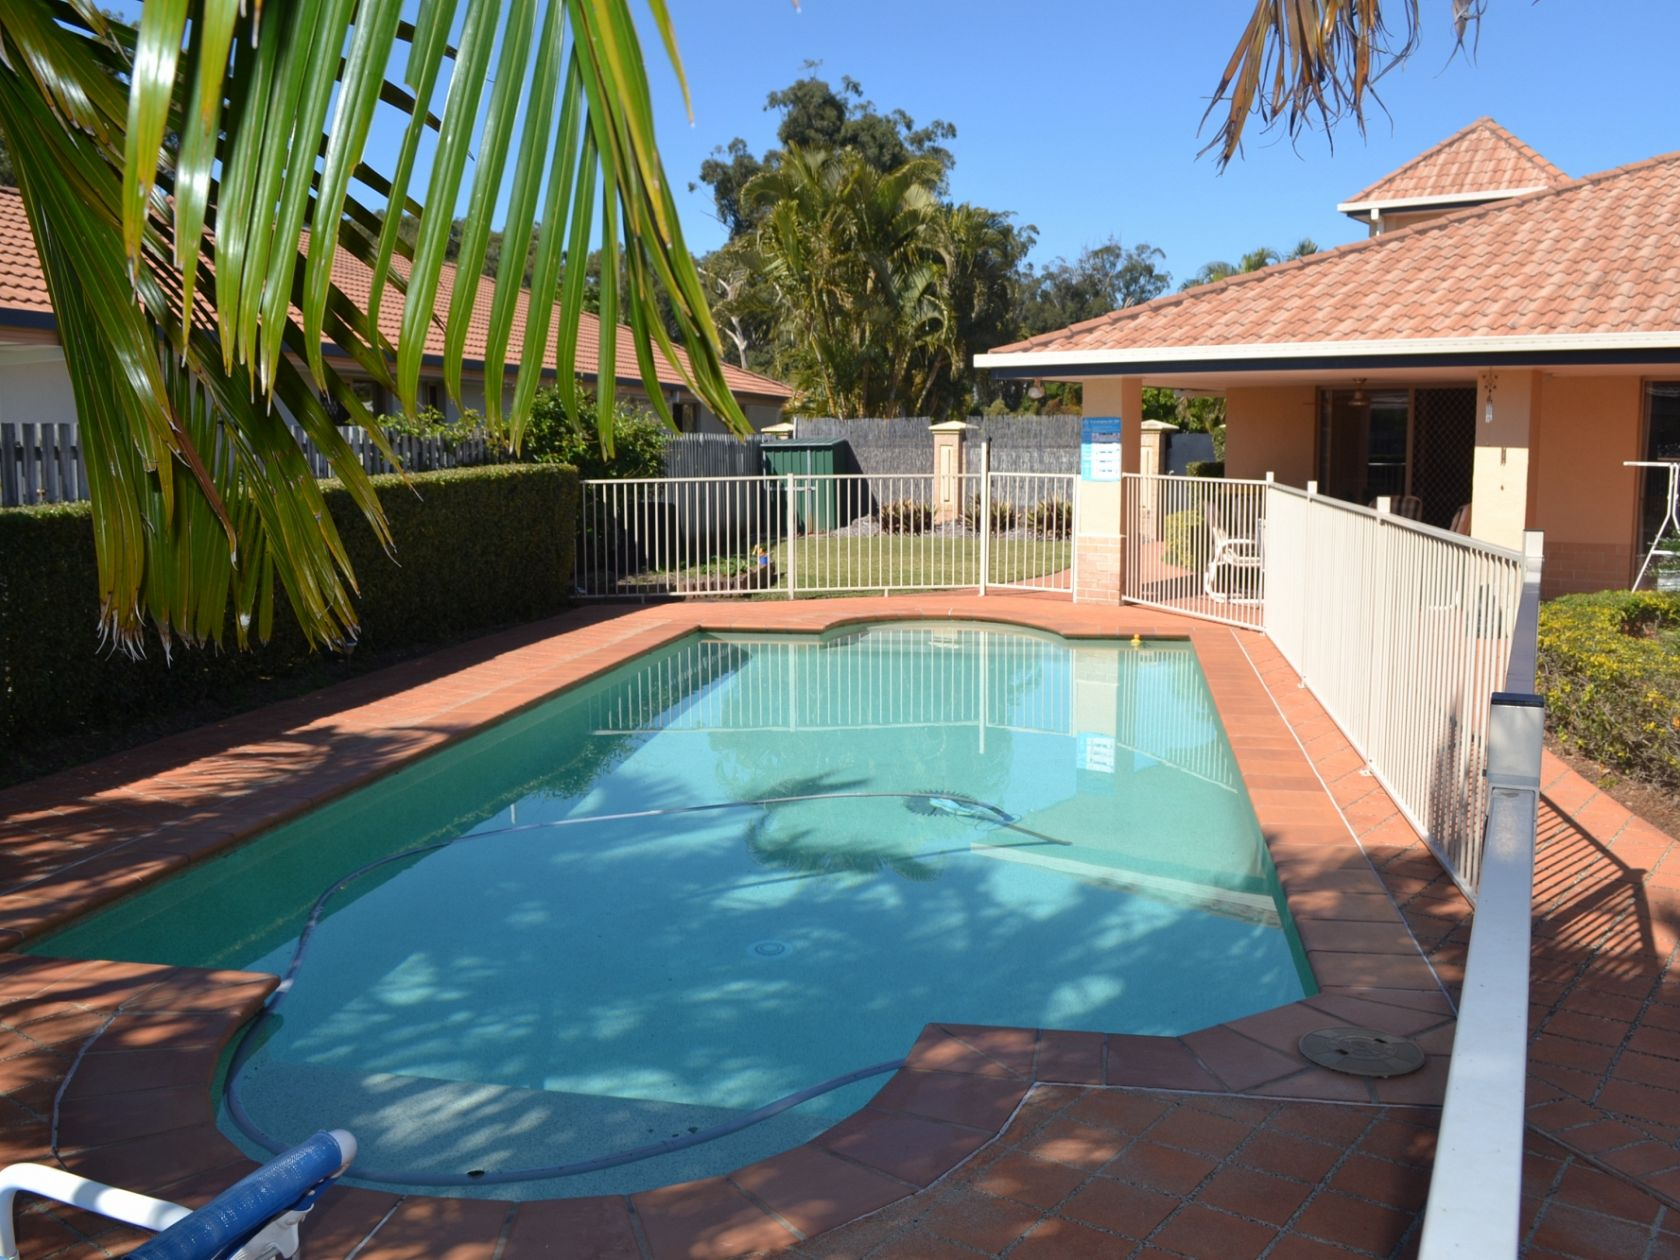 Large Netting Permanent - 3 Bedroom Residence